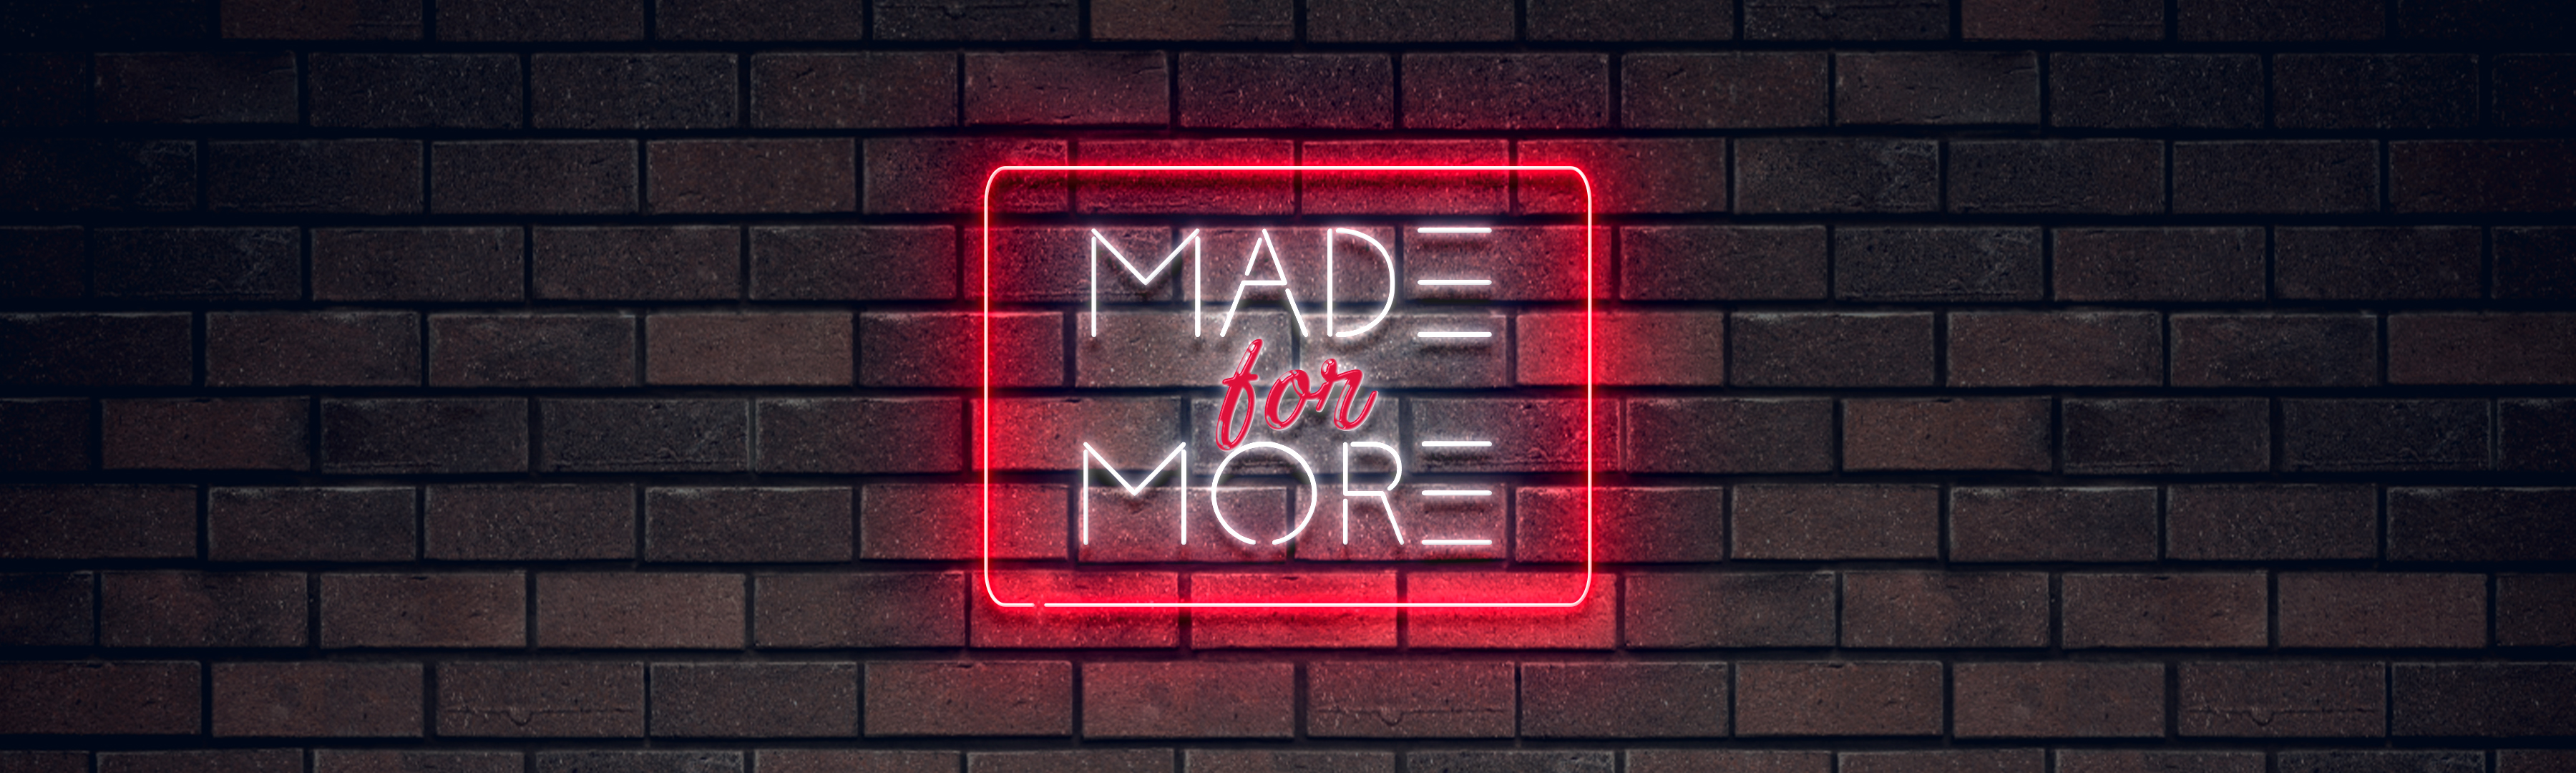 Made-For-More-